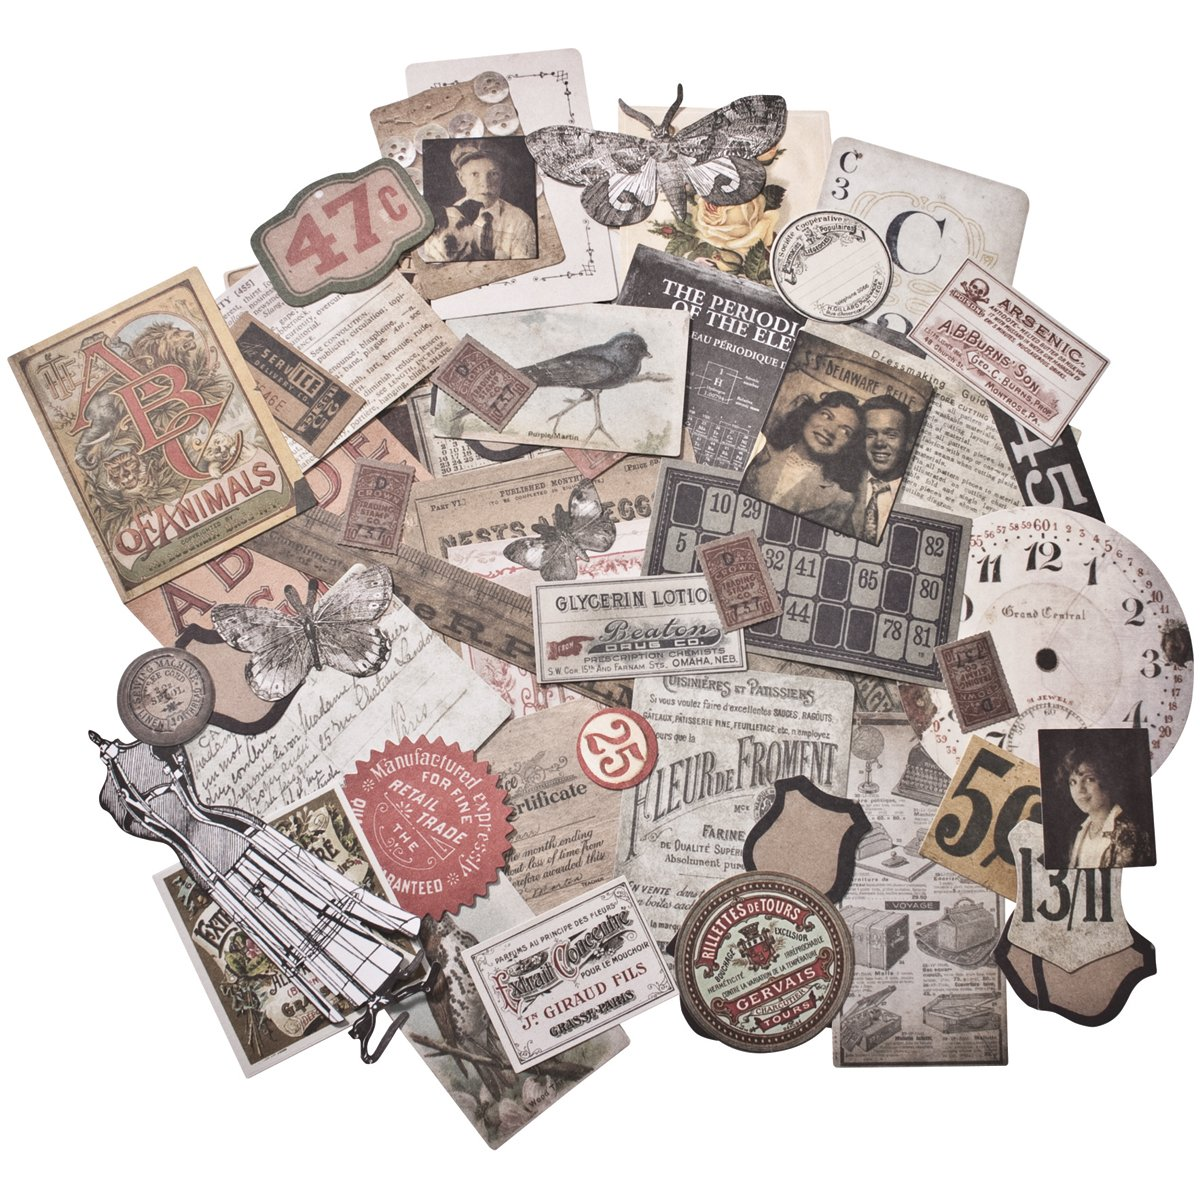 Tim Holtz Idea-ology Thrift Shop Ephemera Pack, 54 Pieces, TH93114 Advantus Corp.